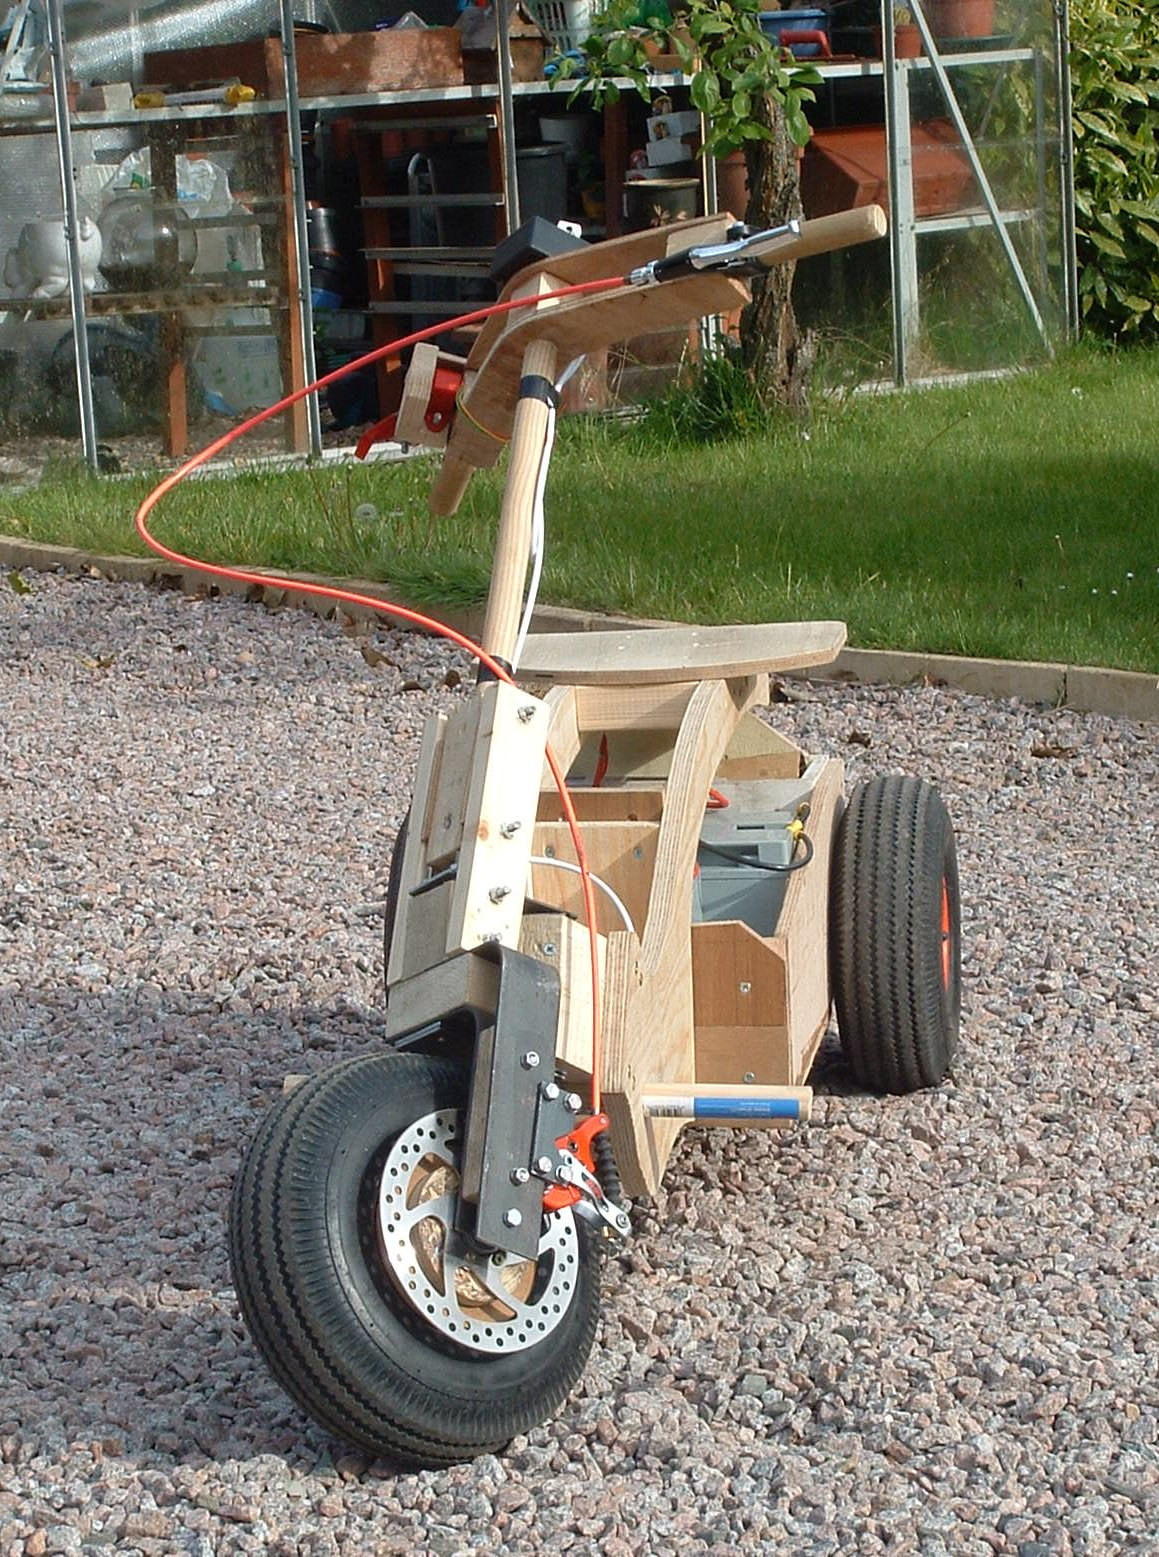 Linear Actuator in addition 3d Printed V8 Solenoid Engine additionally Trike1 together with Golden Motor 250w Geared Hub Motor For Front Bicyclewheel Minimotor further Latest Project Mini Airboat. on mini electric motors for projects